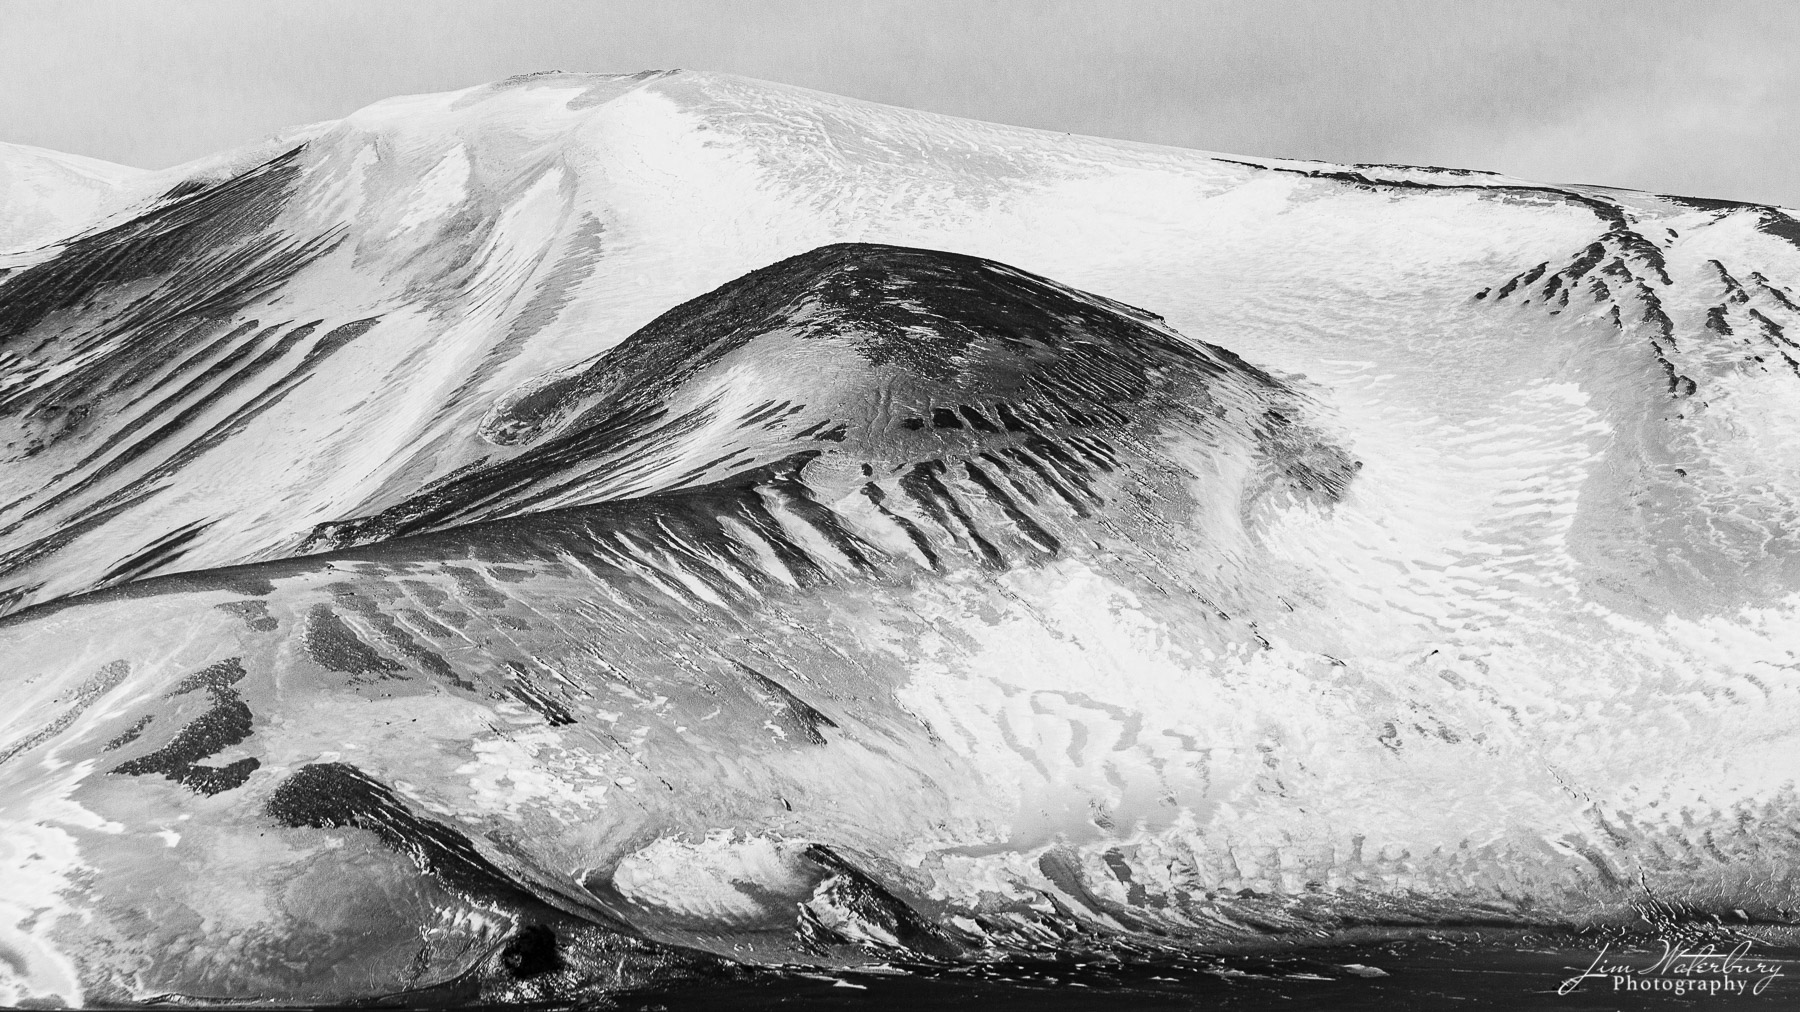 Patterns of snow and contrasting lava base at Deception island, Antarctica.